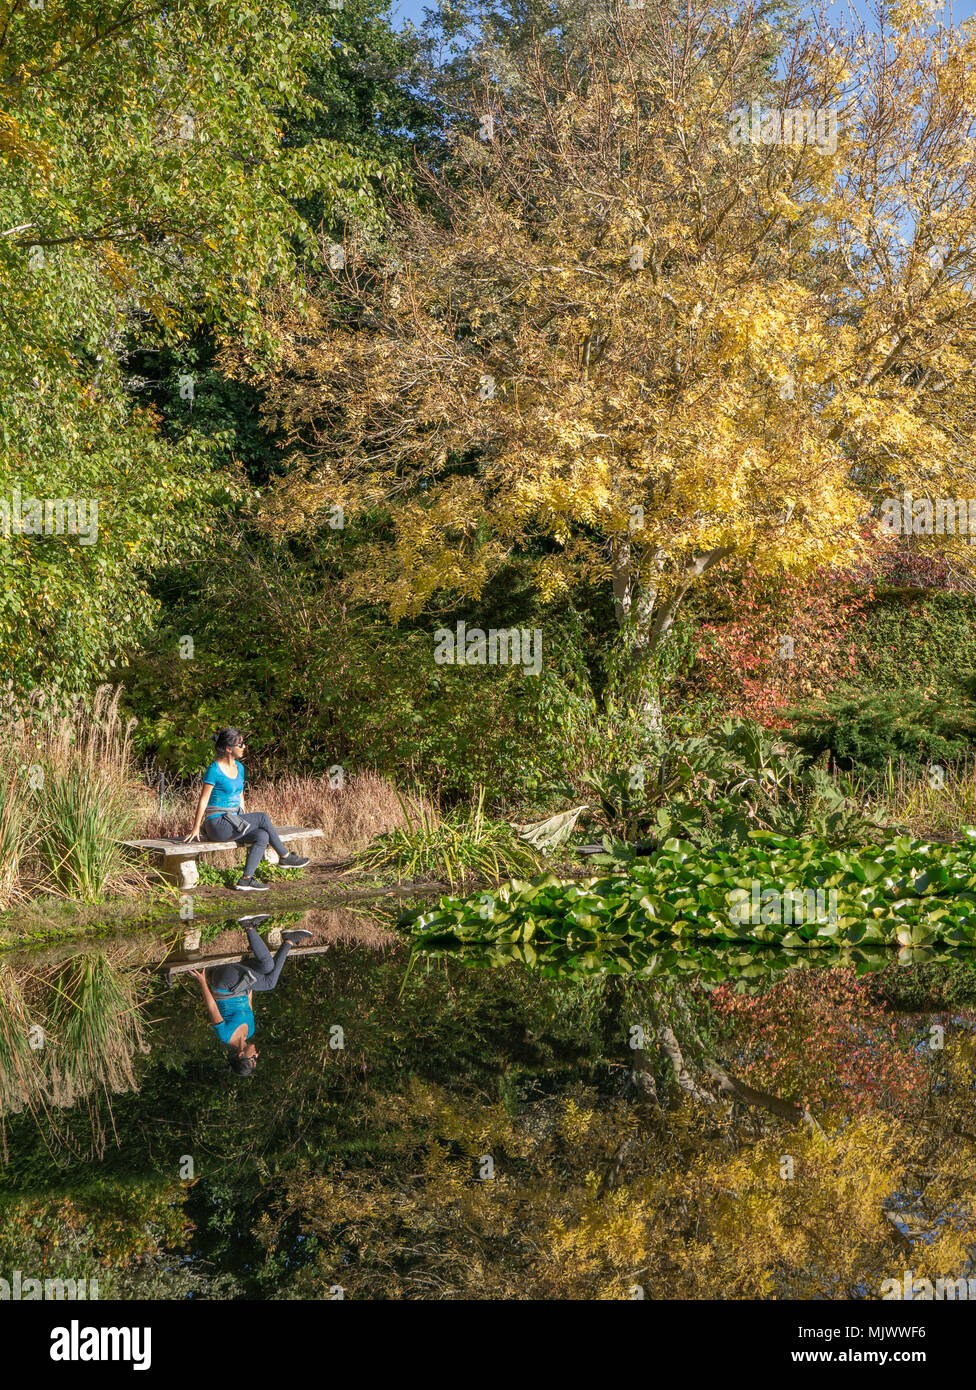 Young asian woman sitting on wooden bench at edge of pond on sunny day surrounded by fall leaves with reflection in water. - Stock Image